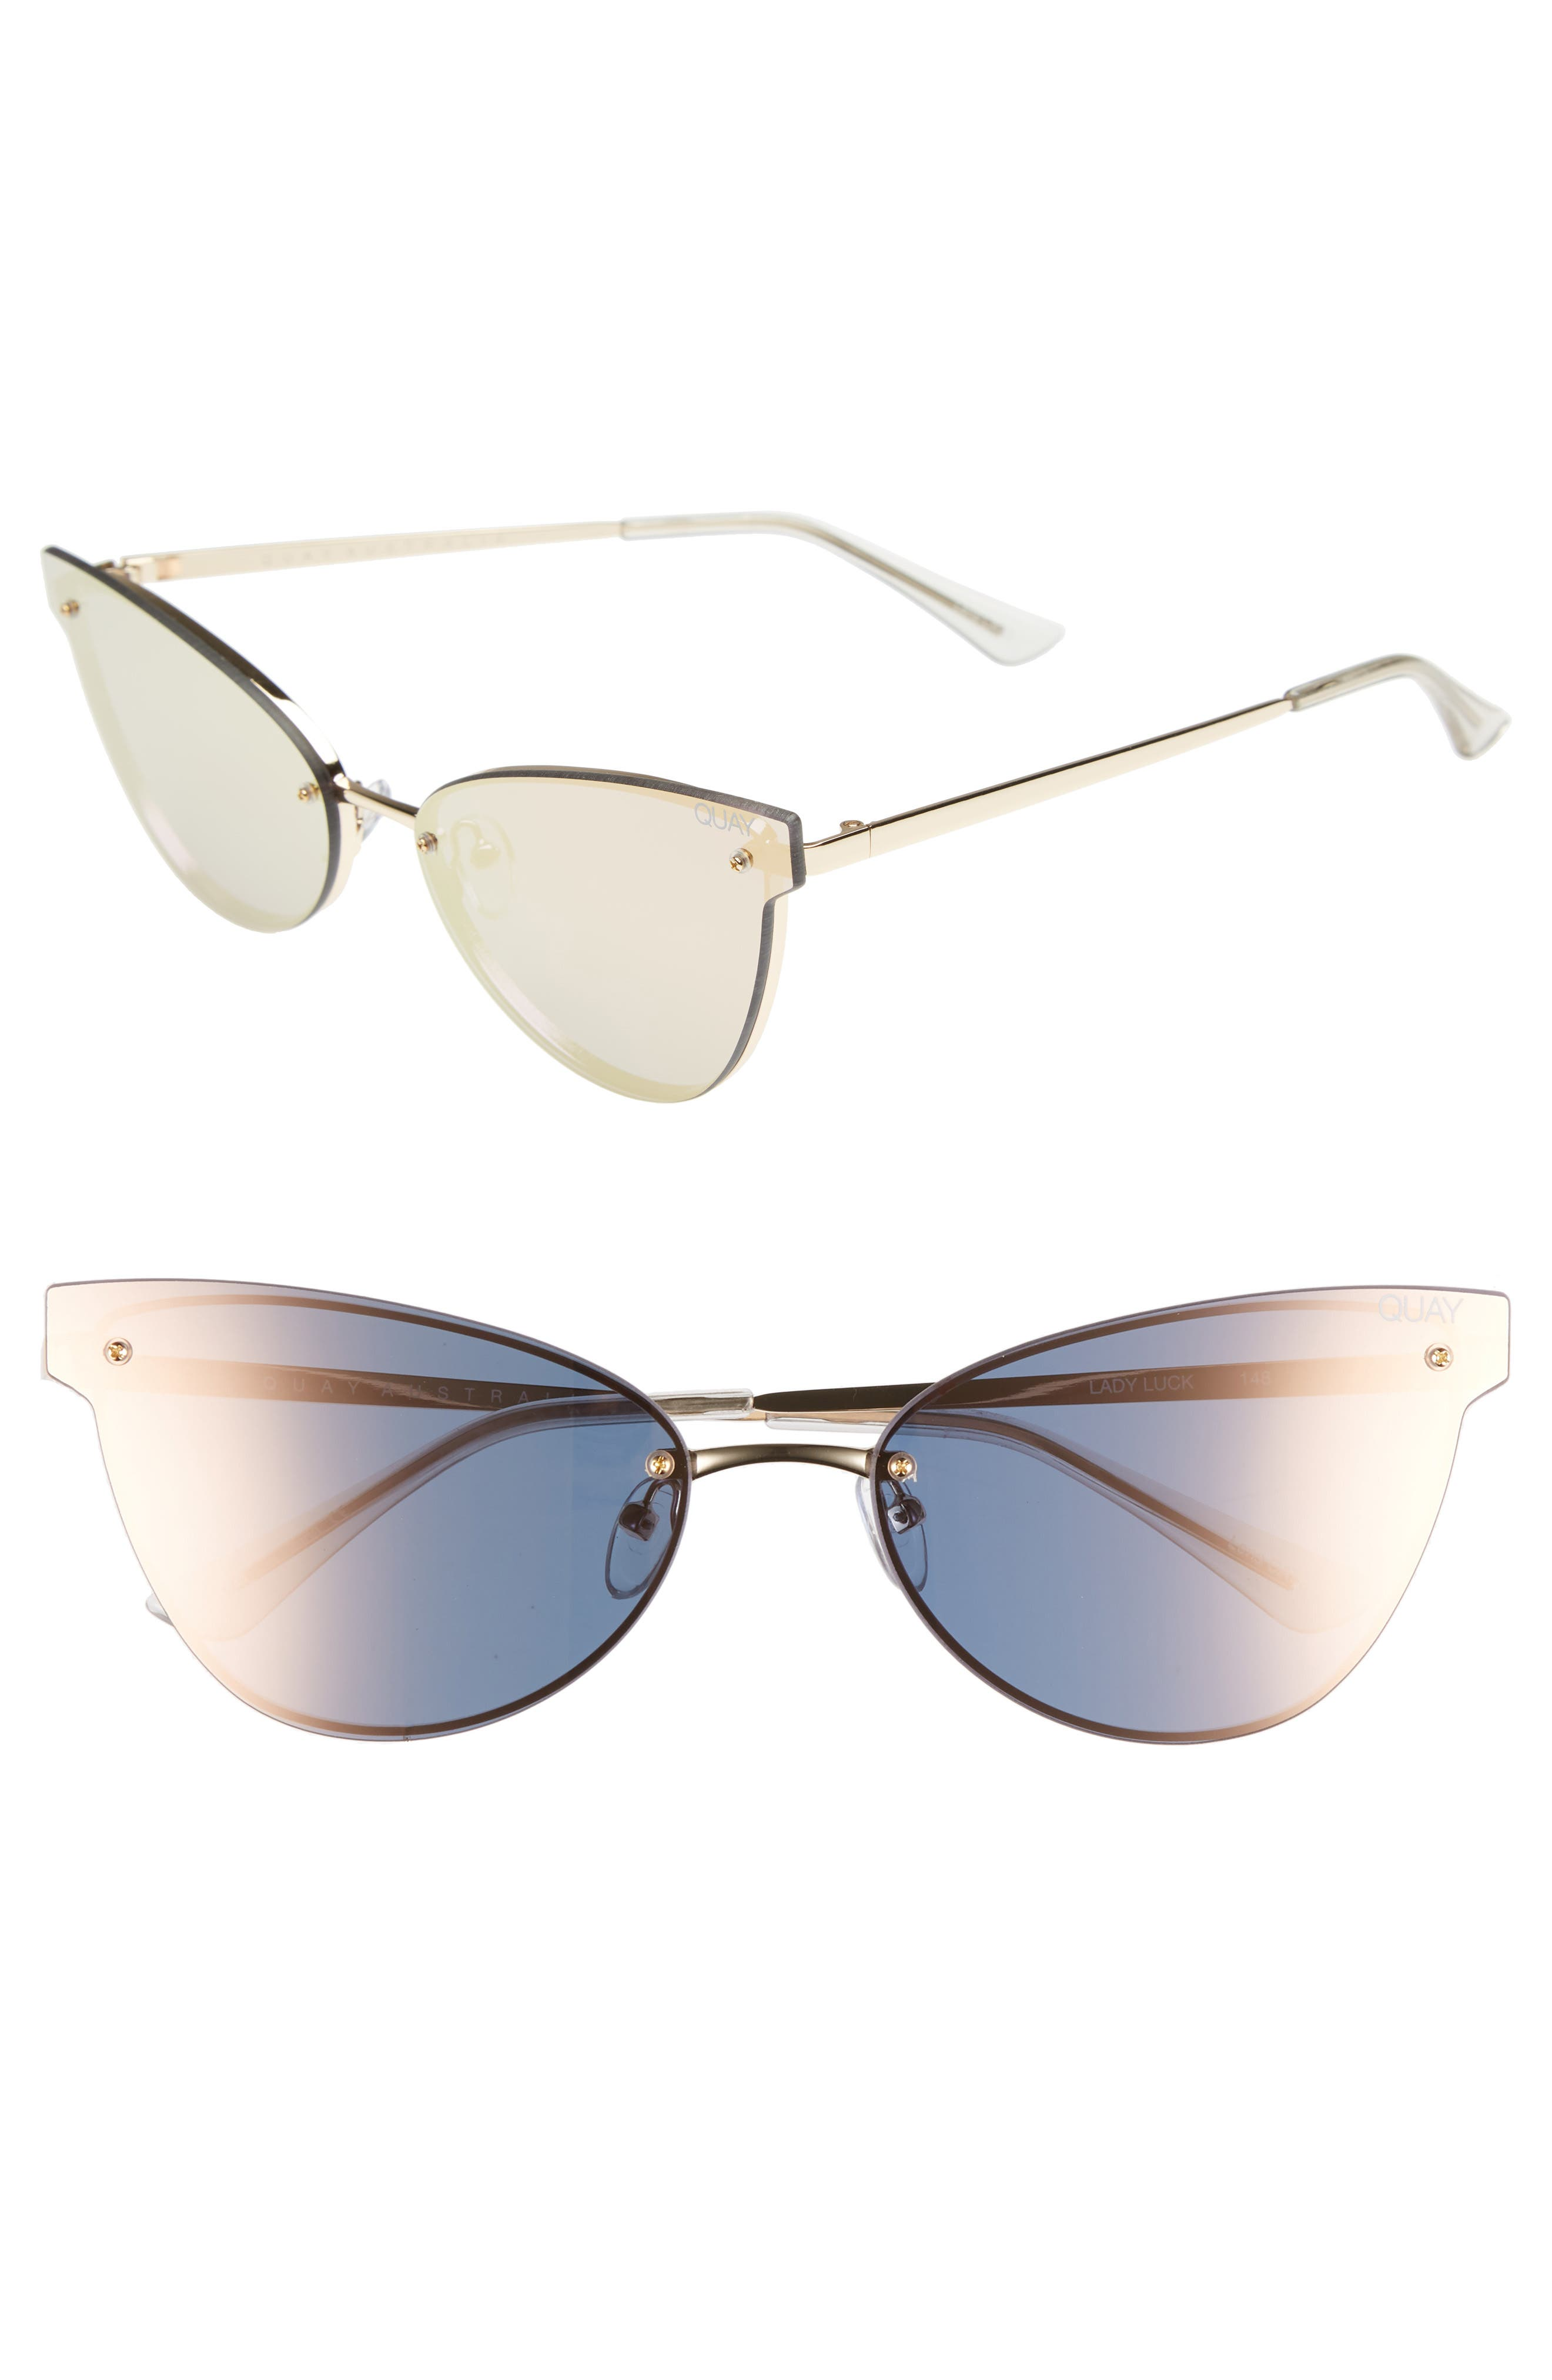 Lady Luck 60mm Cat Eye Sunglasses,                         Main,                         color, Gold/ Gold